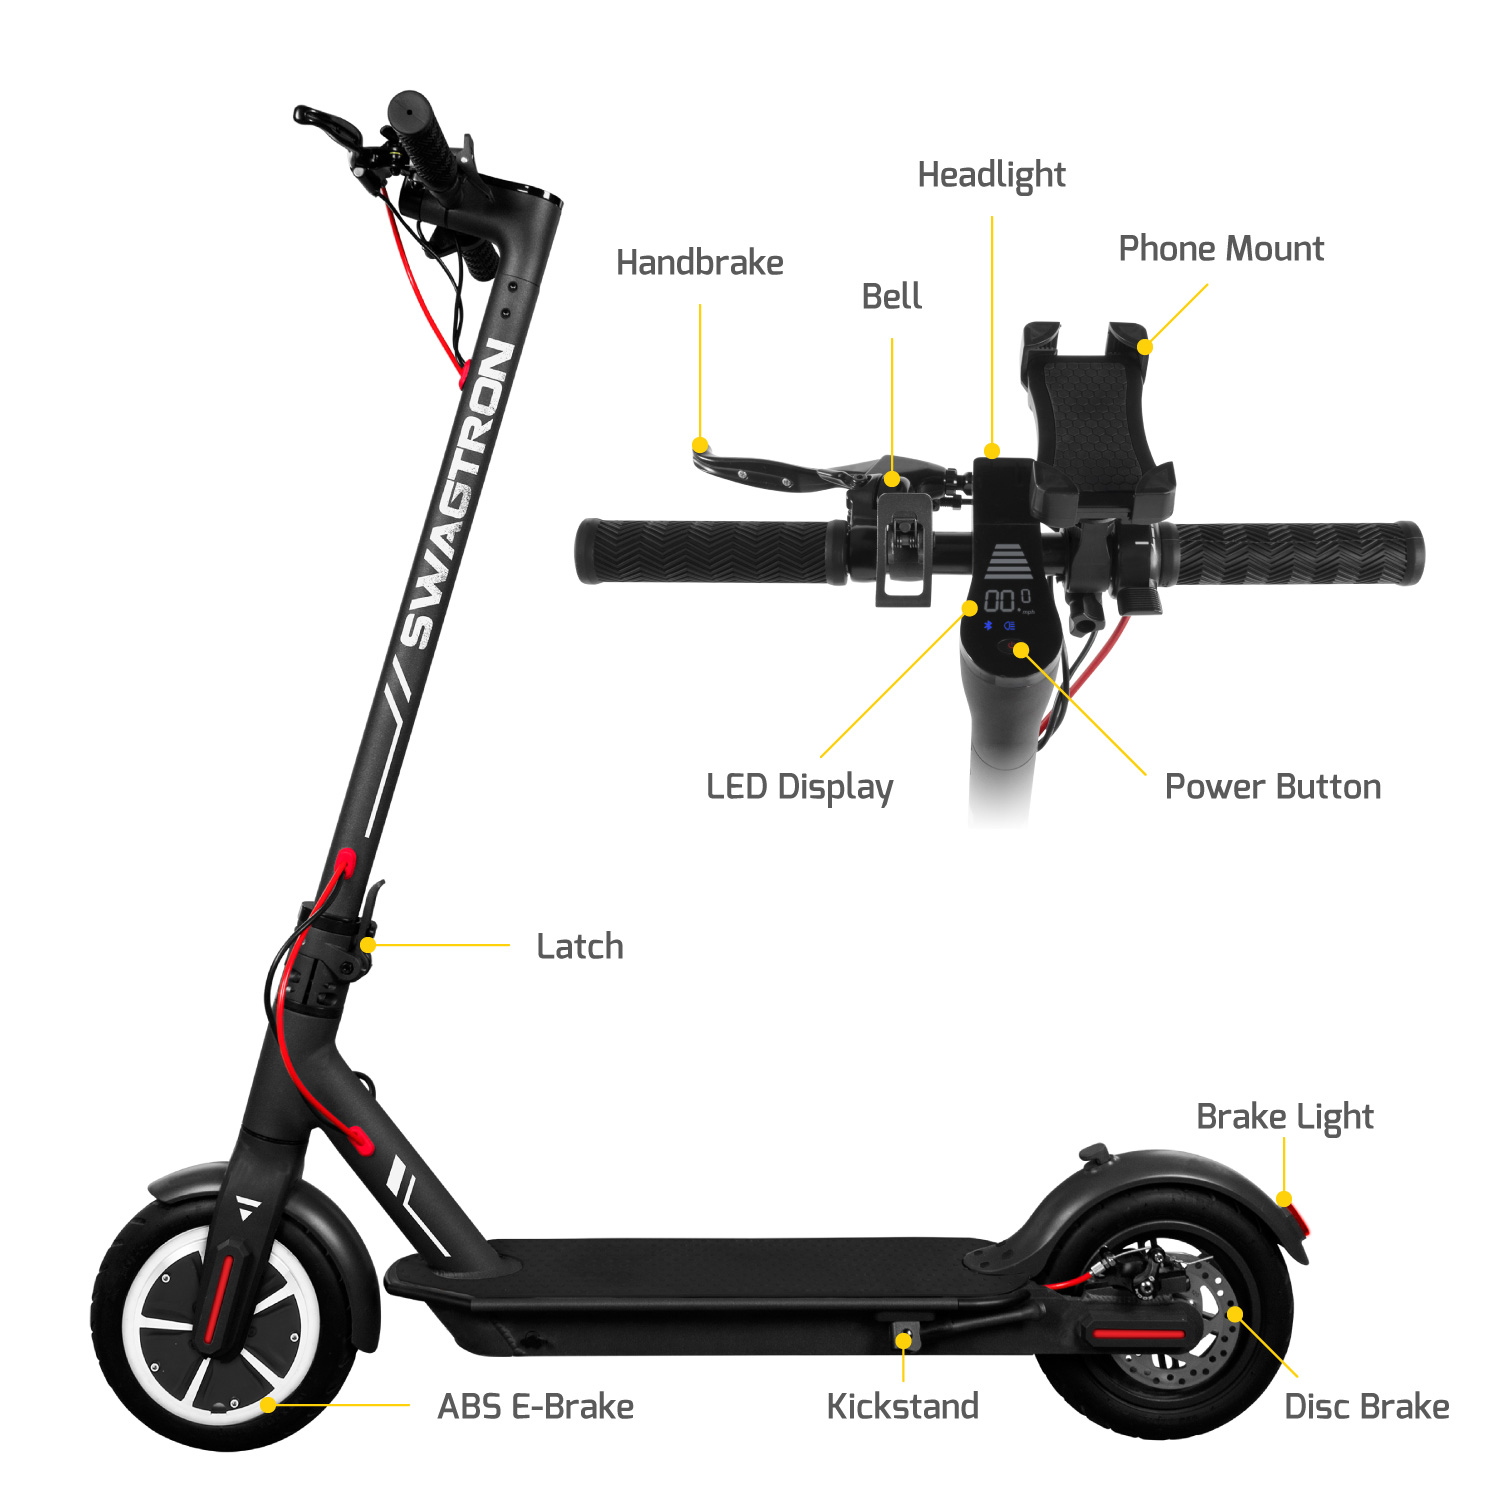 SWAGTRON Swagger Elite 5 S Foldable Electric Scooter with Upgraded 18 MPH  Top Speed & Cupholder